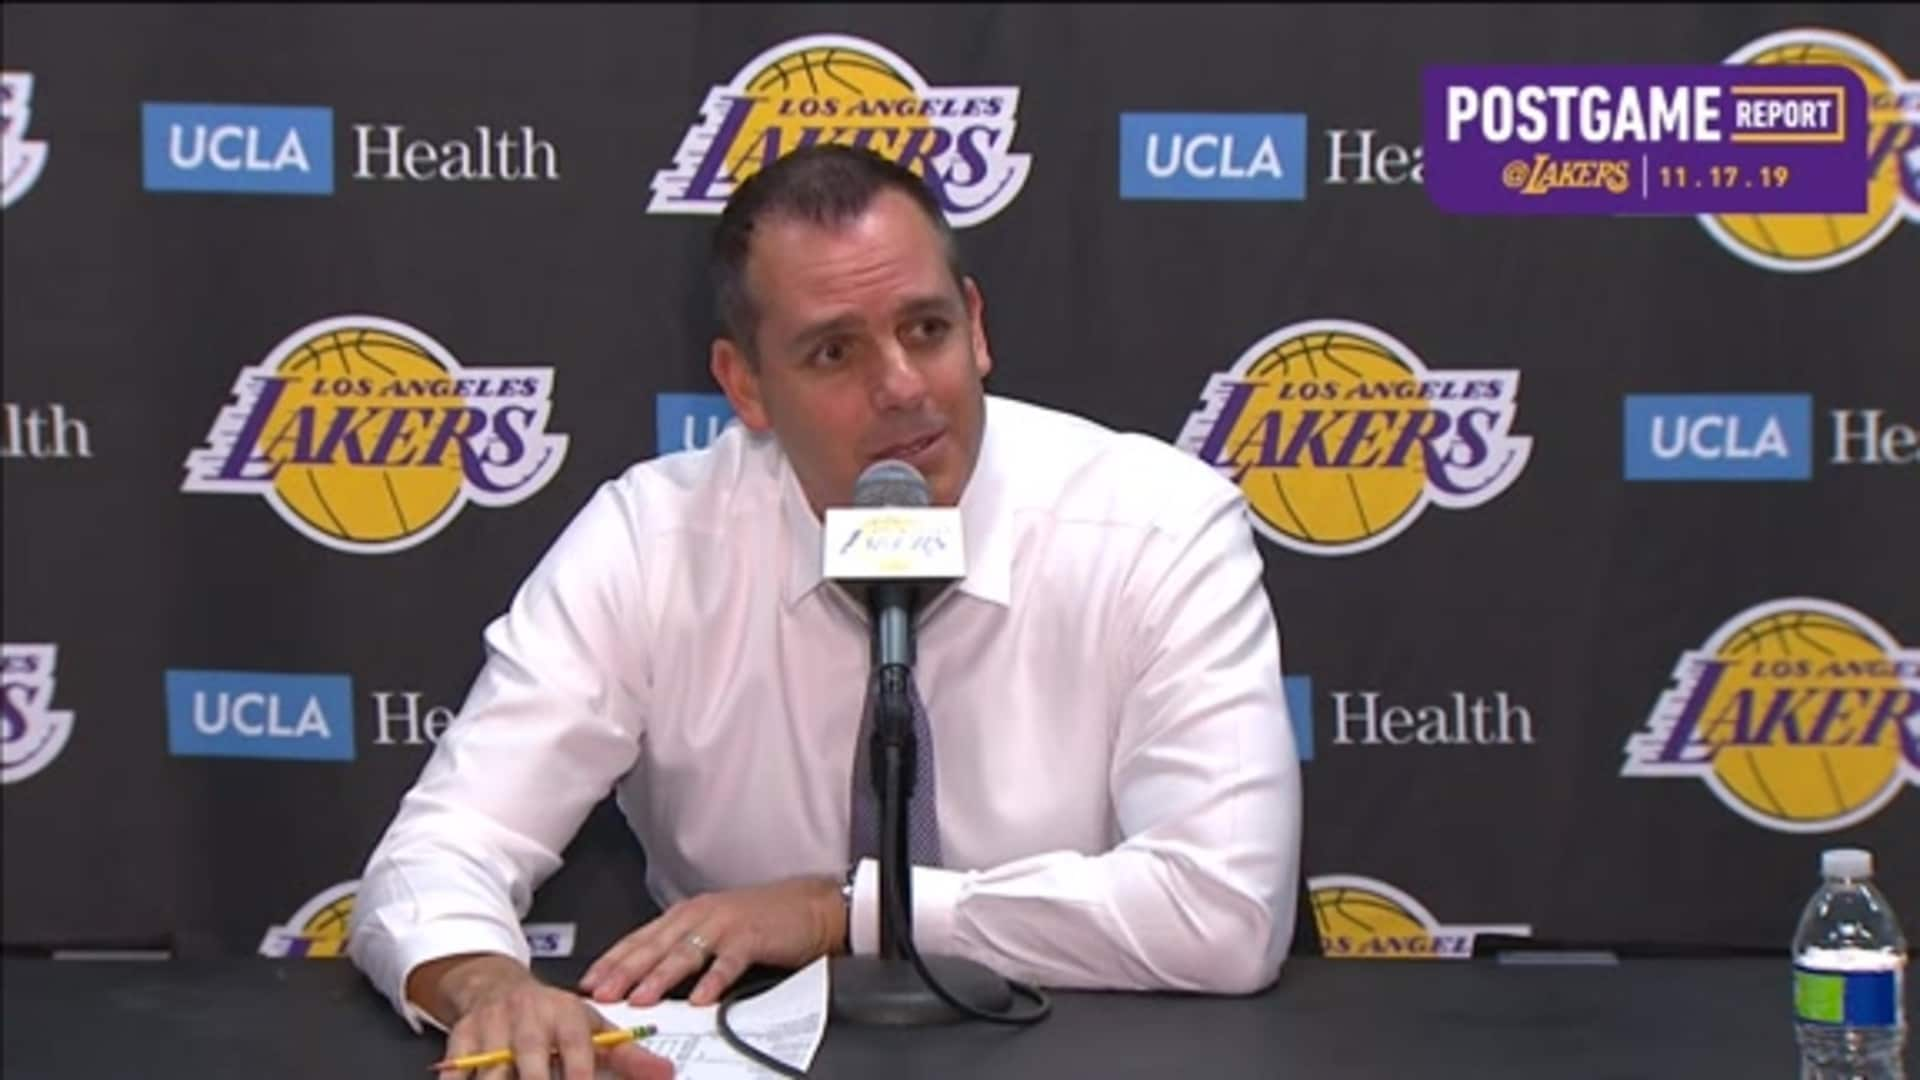 Lakers Postgame: Frank Vogel (11/17/19)